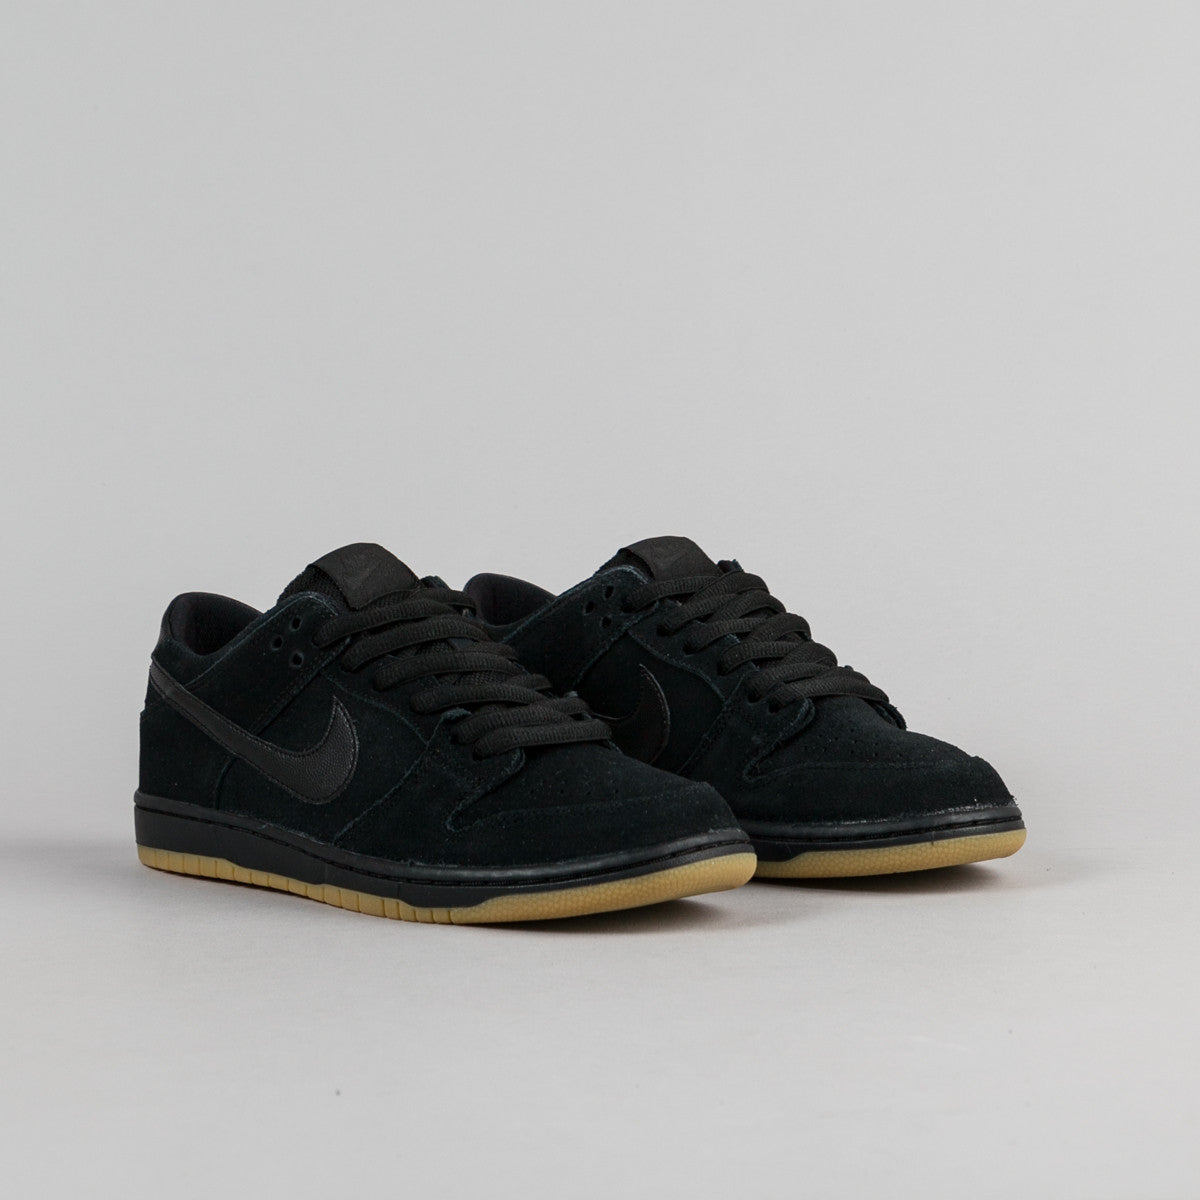 a9909a5a293a nike dunk low black gum